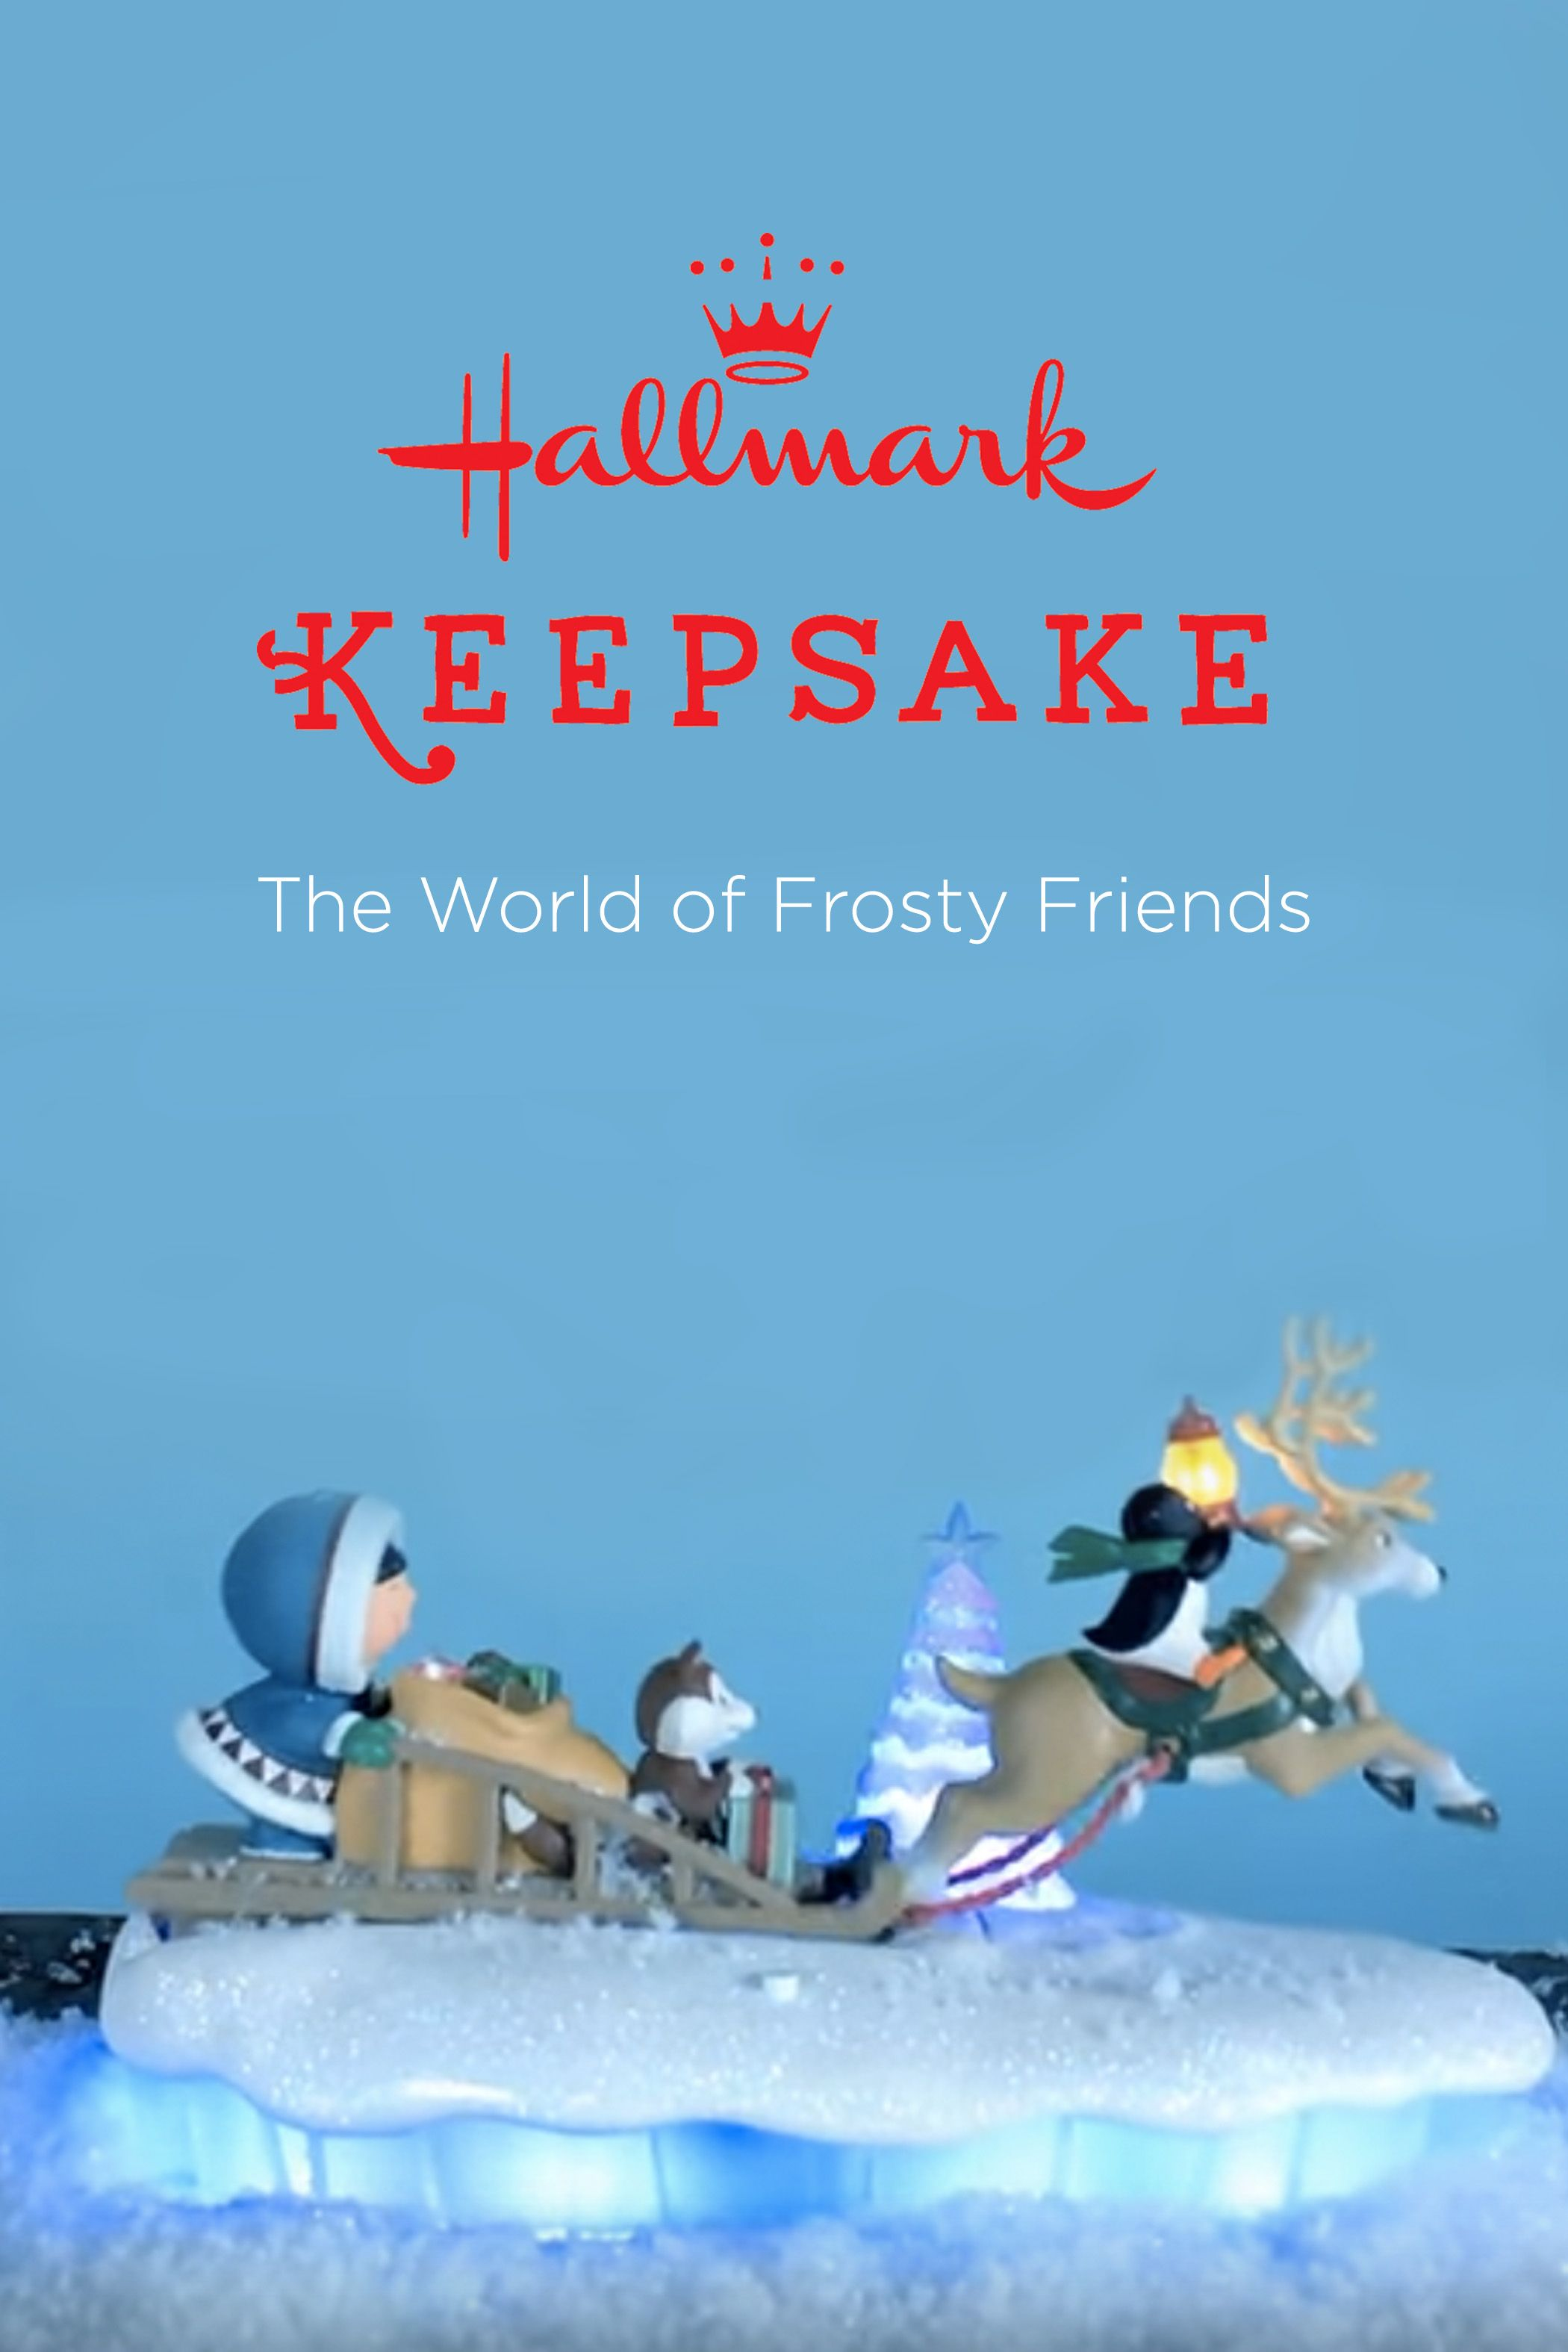 add an adorable piece to your winter wonderland mantelscape or christmas home decor with this world of frosty friends hallmark keepsake ornament and imagine - Hallmark Christmas Home Decor